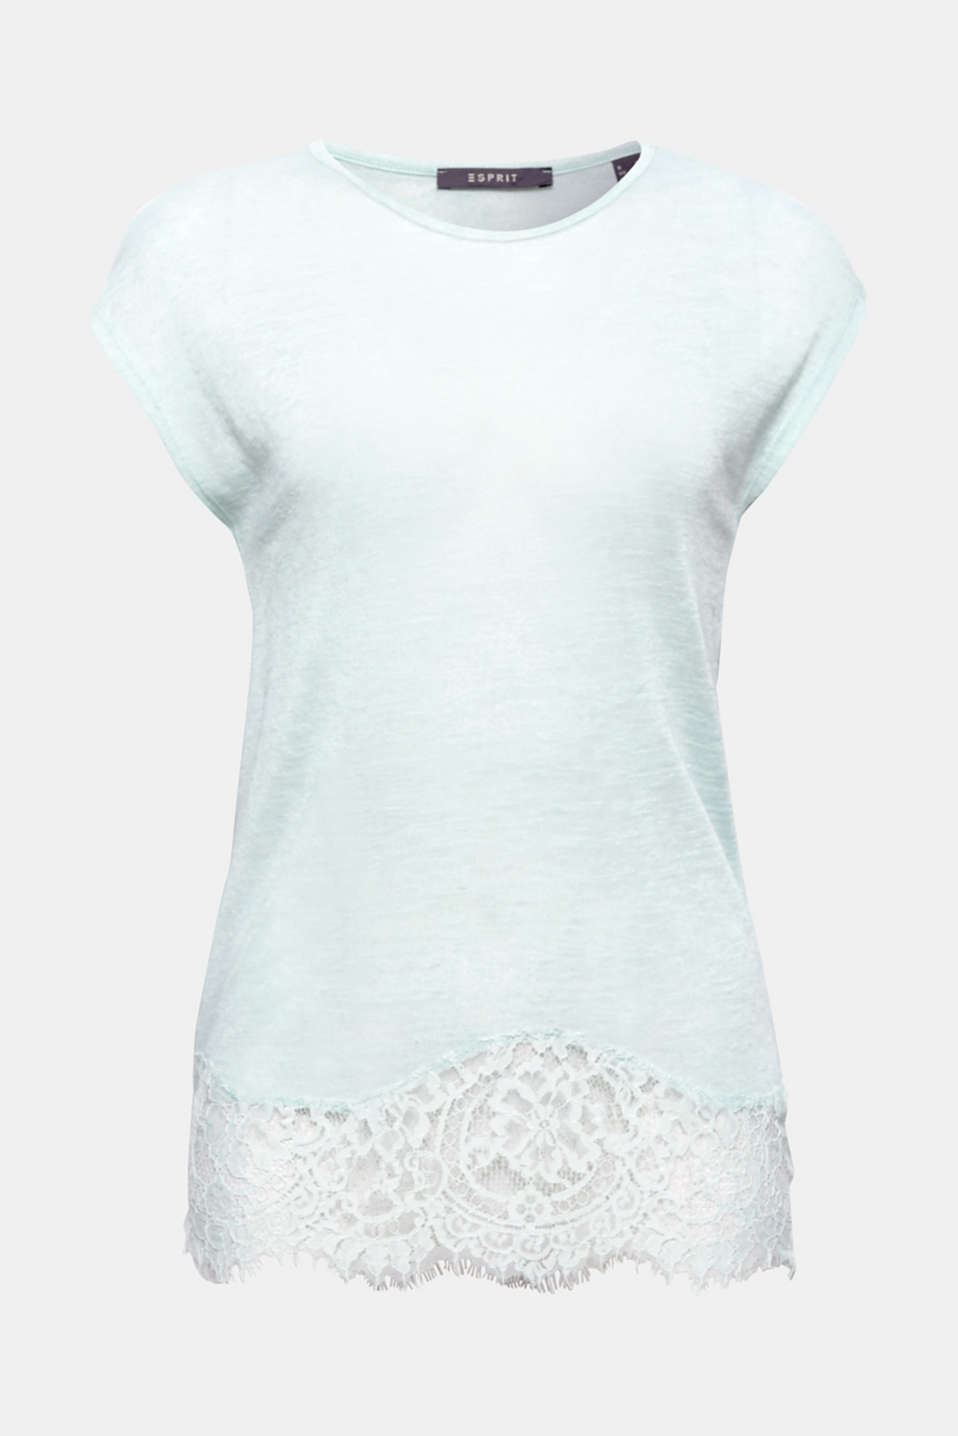 This casual top with a percentage of linen and an elegant lace hem at the front is wonderfully airy and slightly sheer.